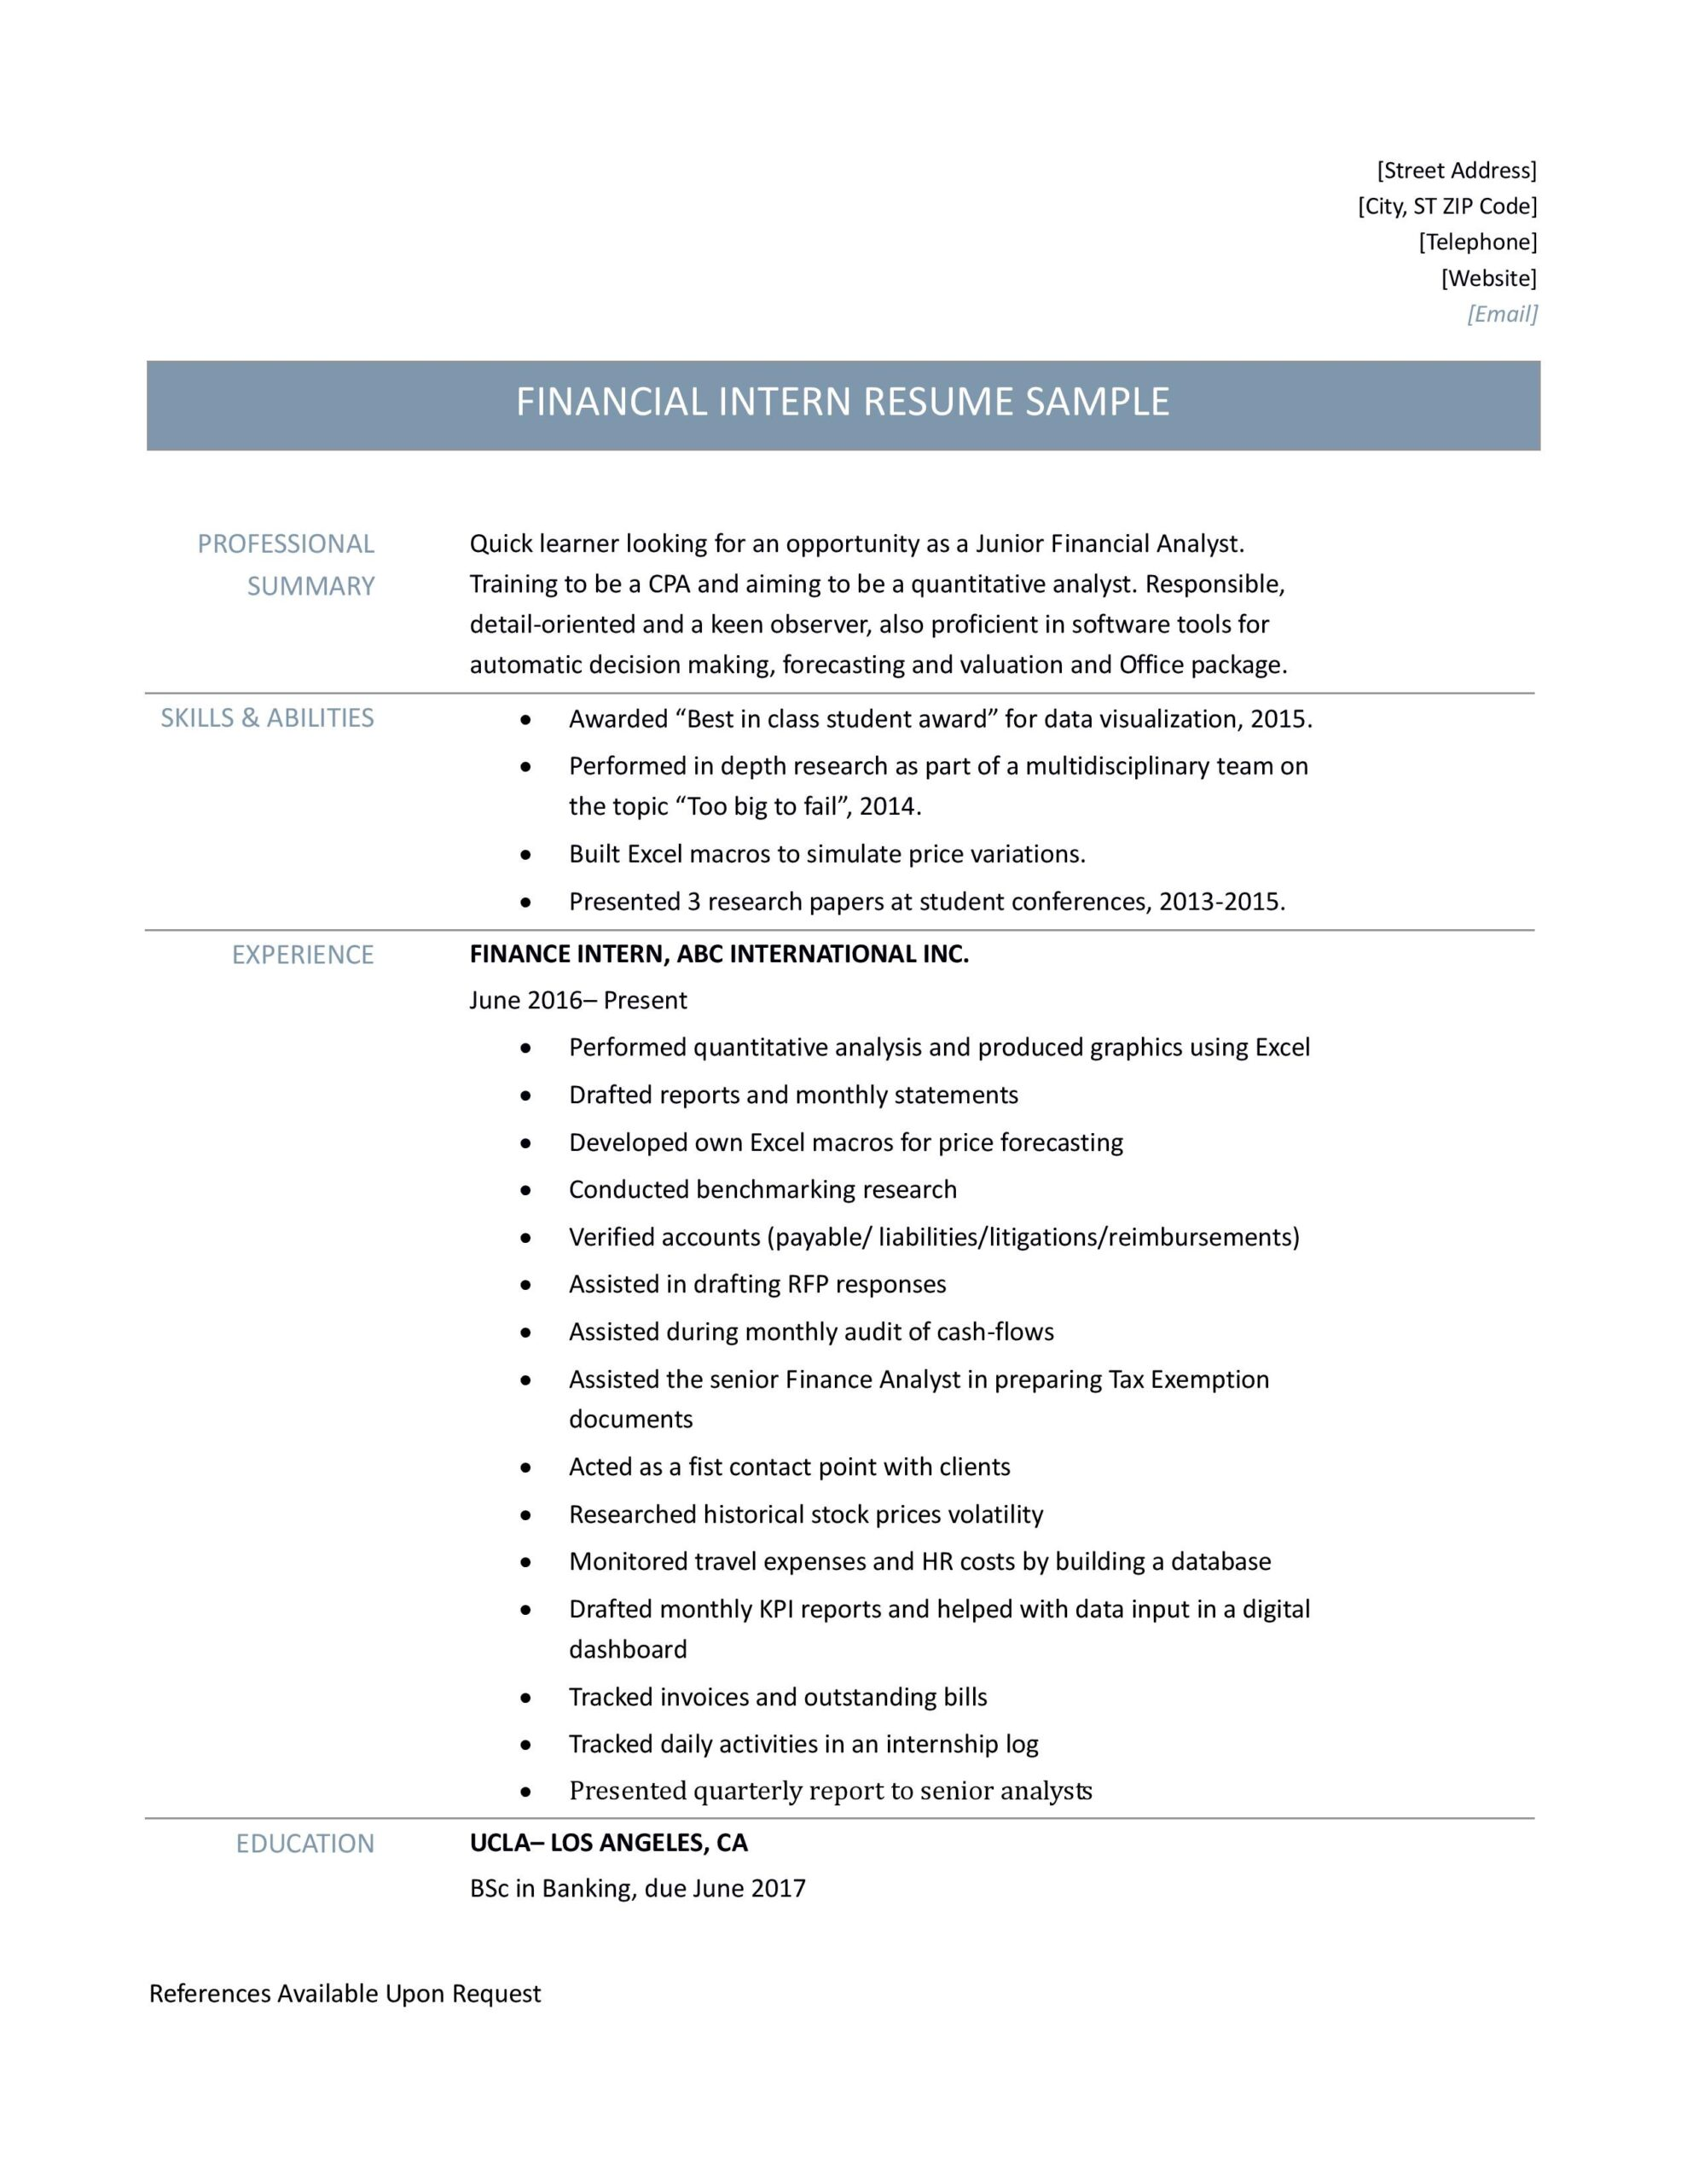 finance intern resume samples tips and templates by builders medium job description for Resume Finance Intern Job Description For Resume